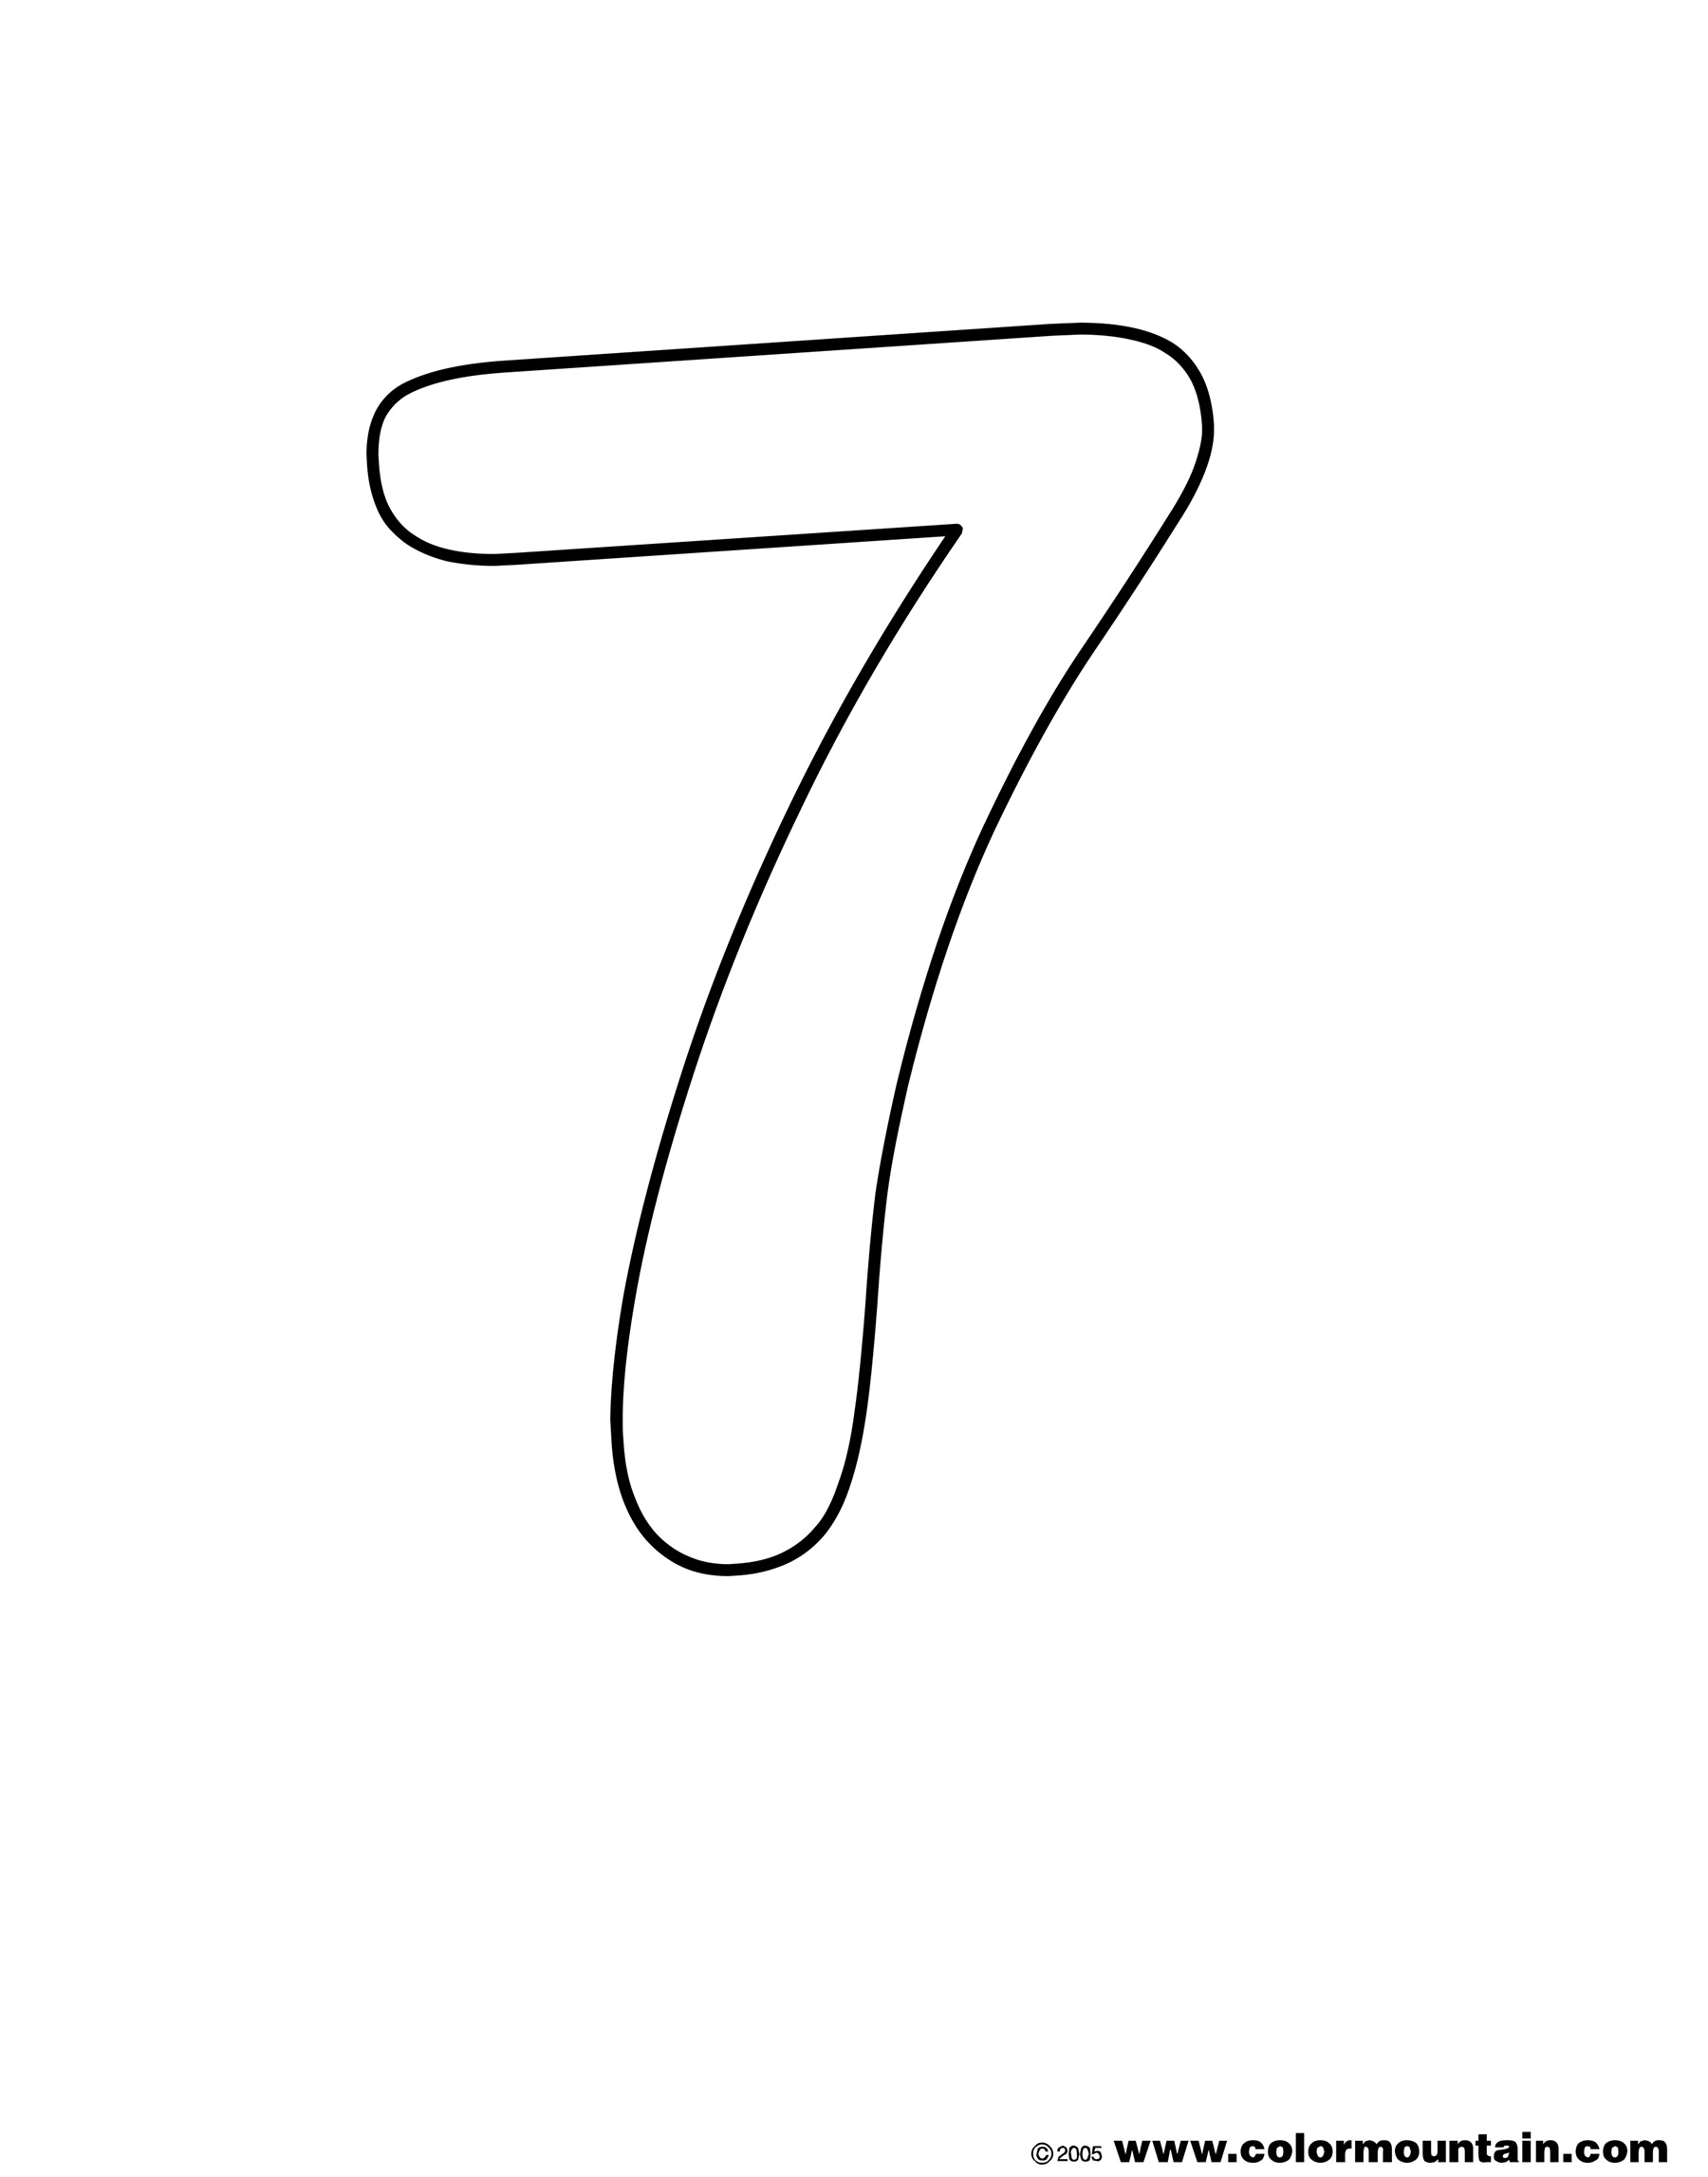 colouring picture of number 7 number 7 coloring page getcoloringpagescom of picture number 7 colouring